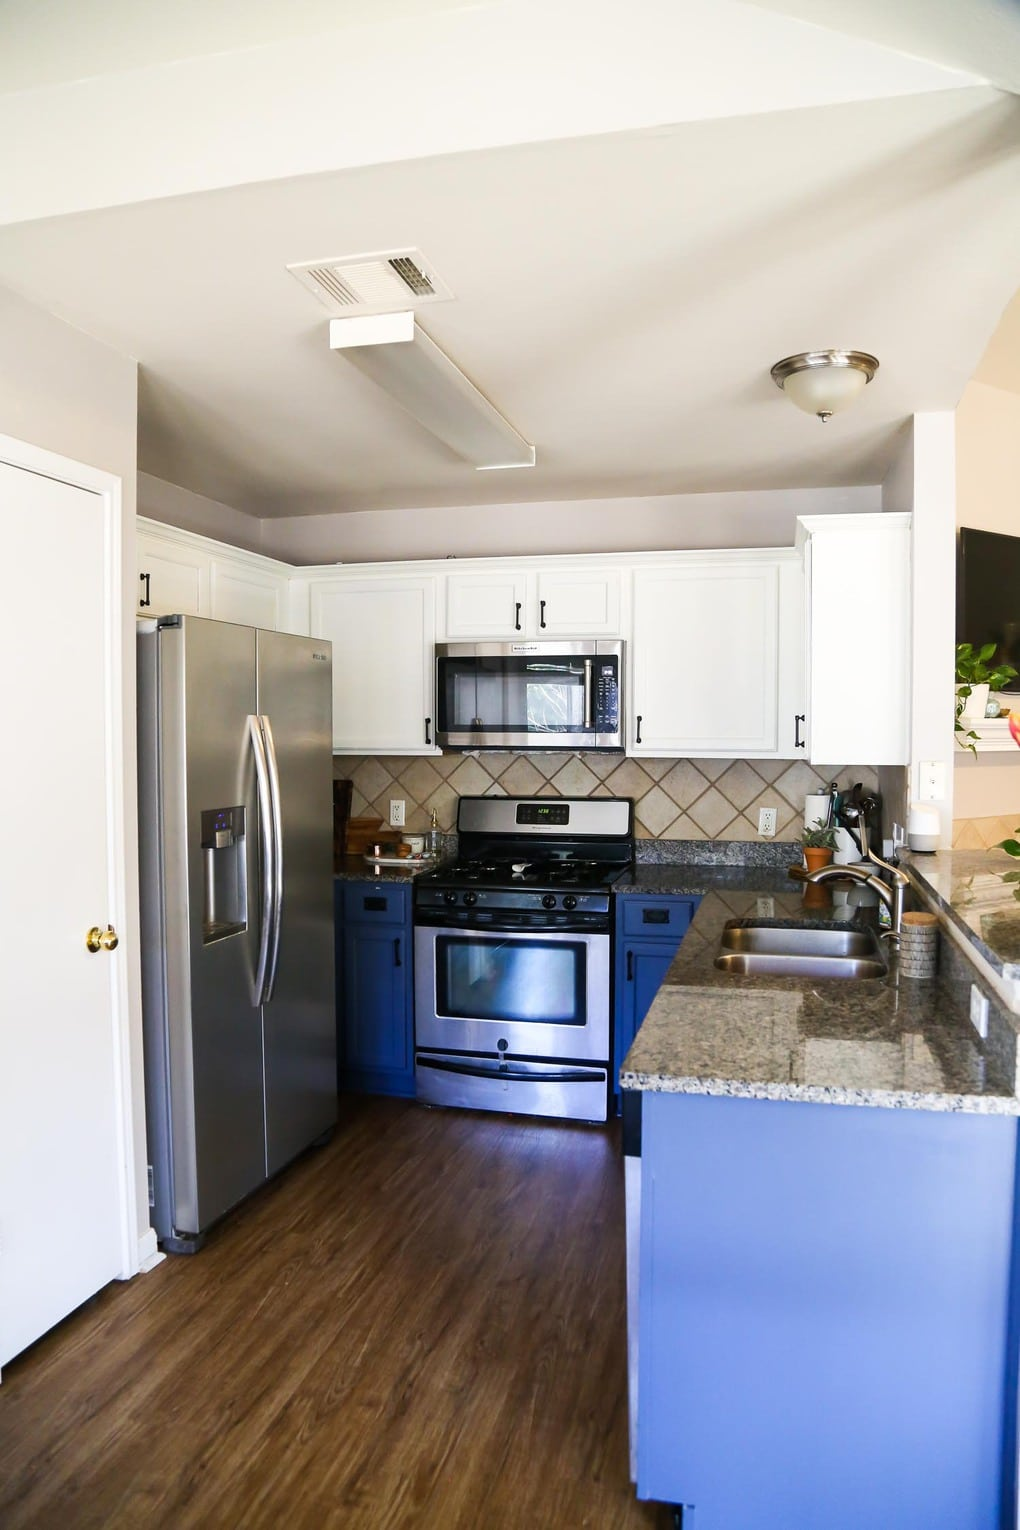 Tips and tricks for painting kitchen cabinets - the best paint colors to use the & Our DIY Blue \u0026 White Kitchen Cabinets - Love \u0026 Renovations